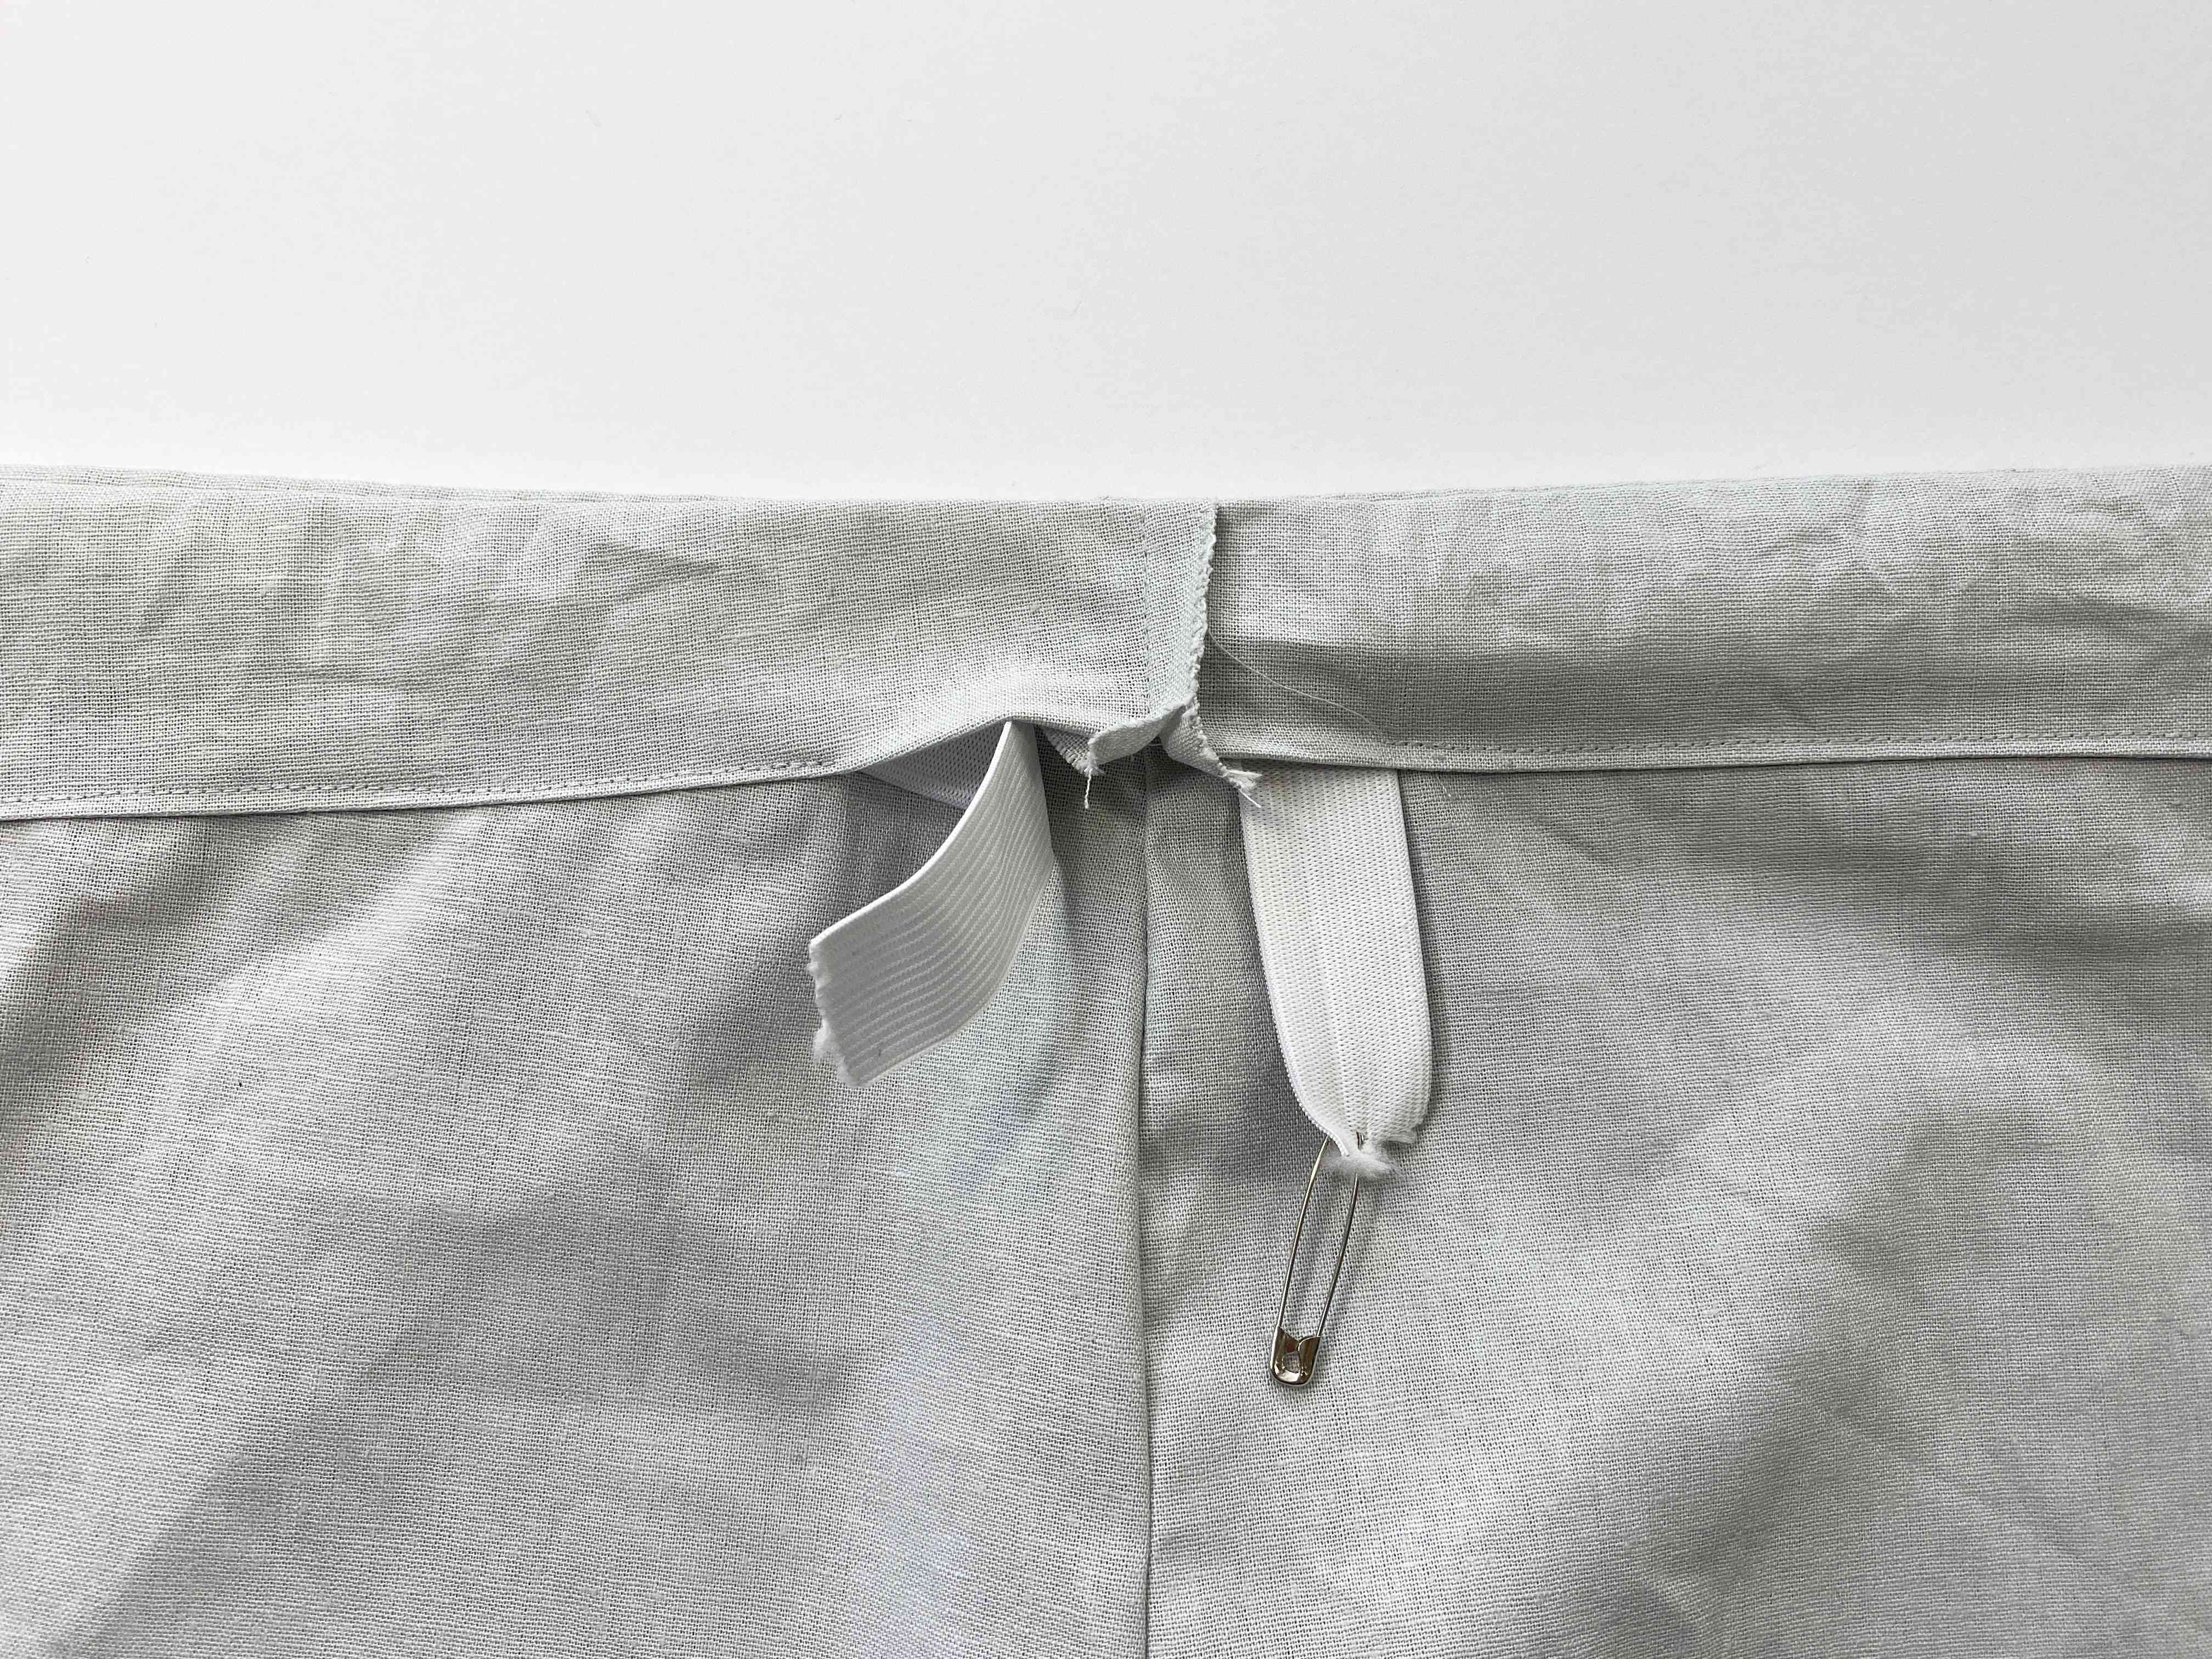 Elastic with a safety pin inserted into a waistband